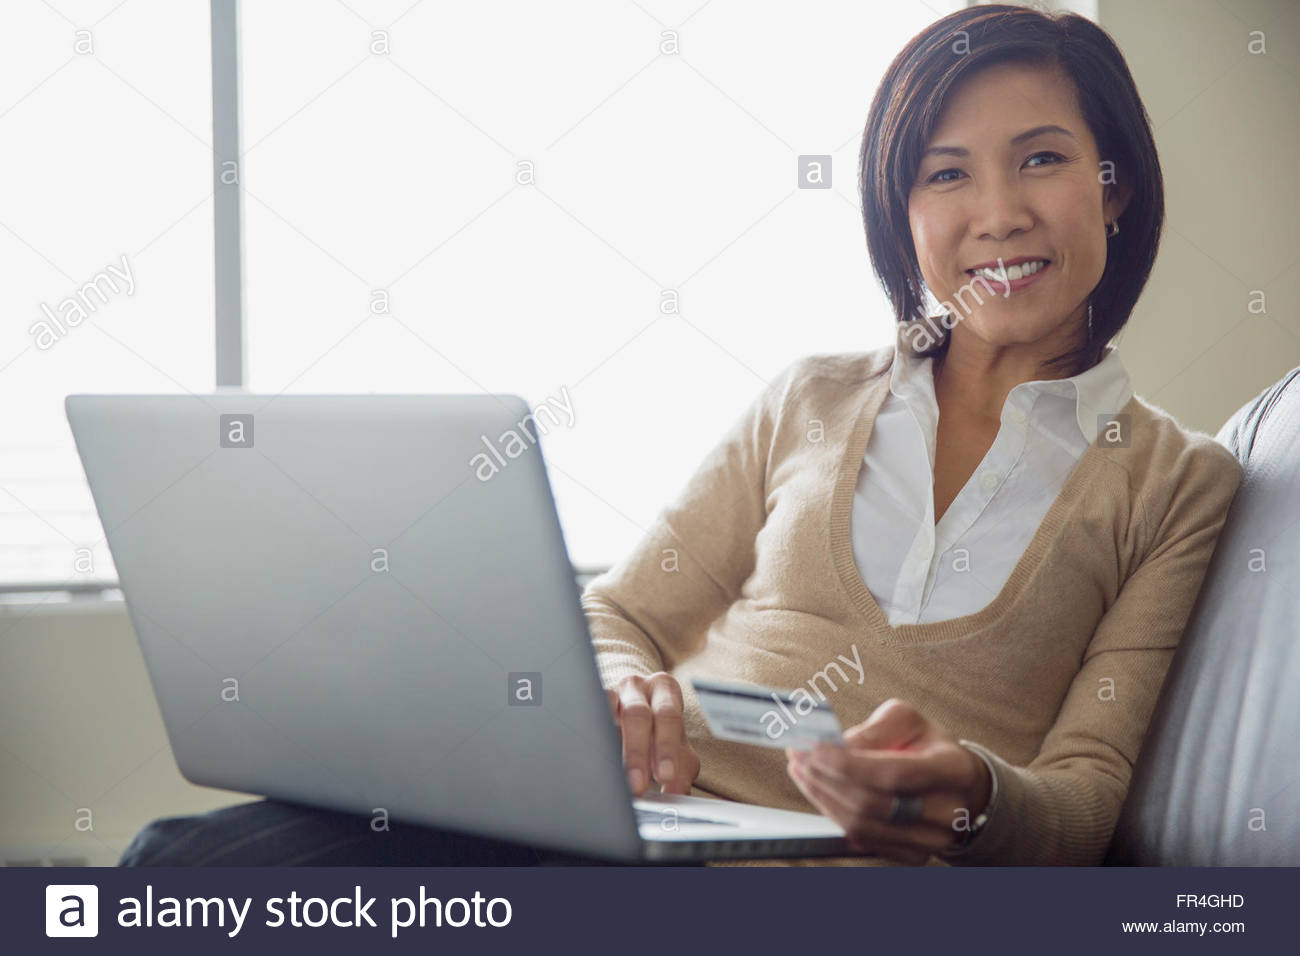 Portrait of Asian businesswoman making online purchase. - Stock Image